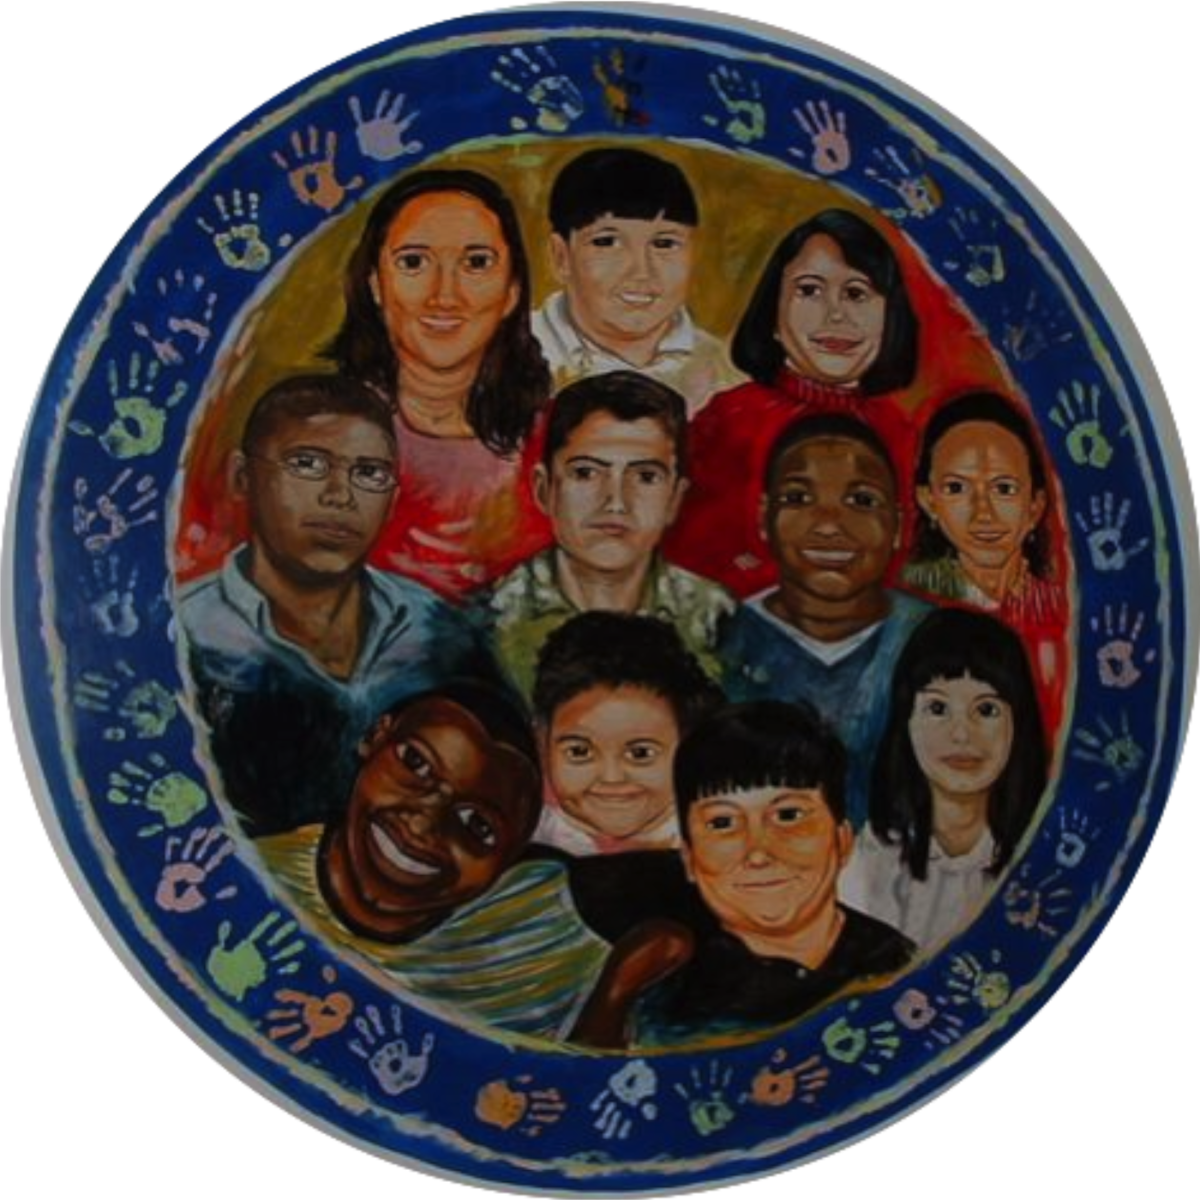 Mural at Latino Family Services in Detroit, MI